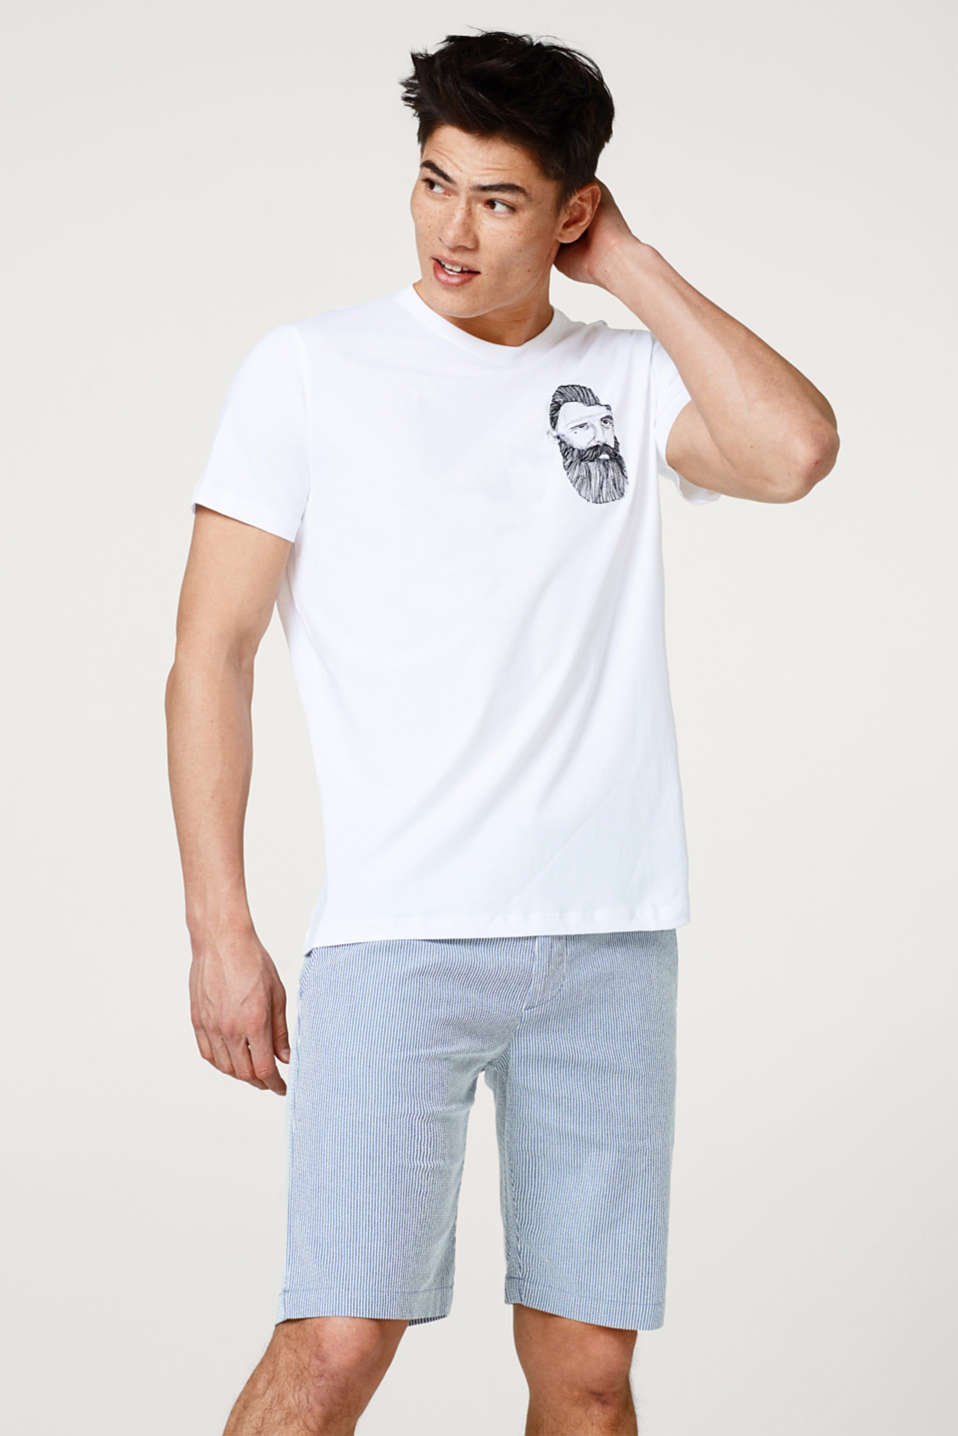 Esprit - Jersey T-shirt with a hipster print, made of cotton